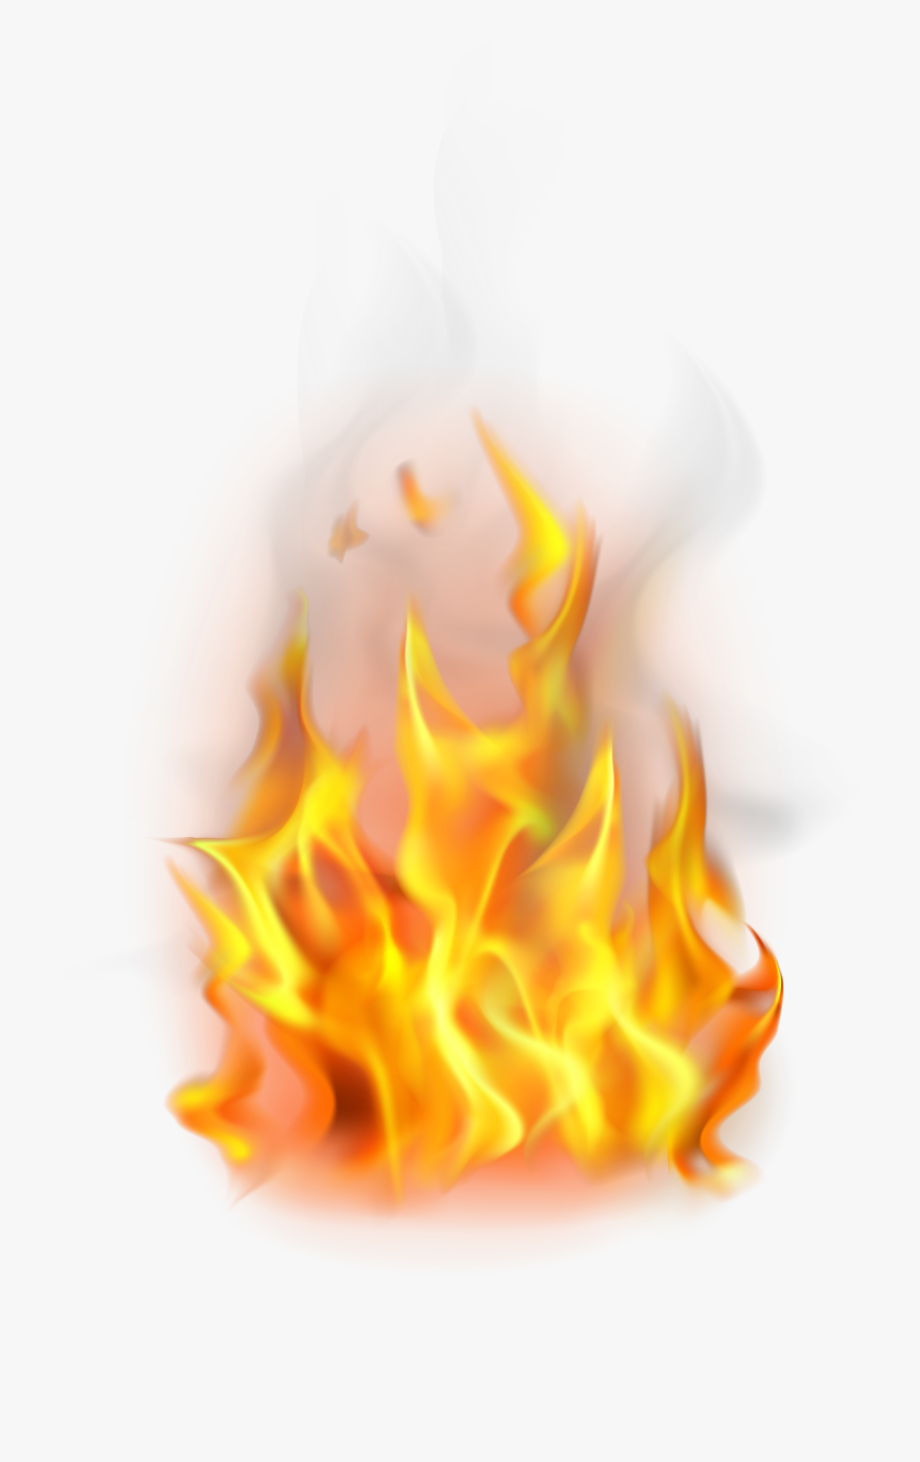 Wood Fire Transparent & Png Clipart Free Download.